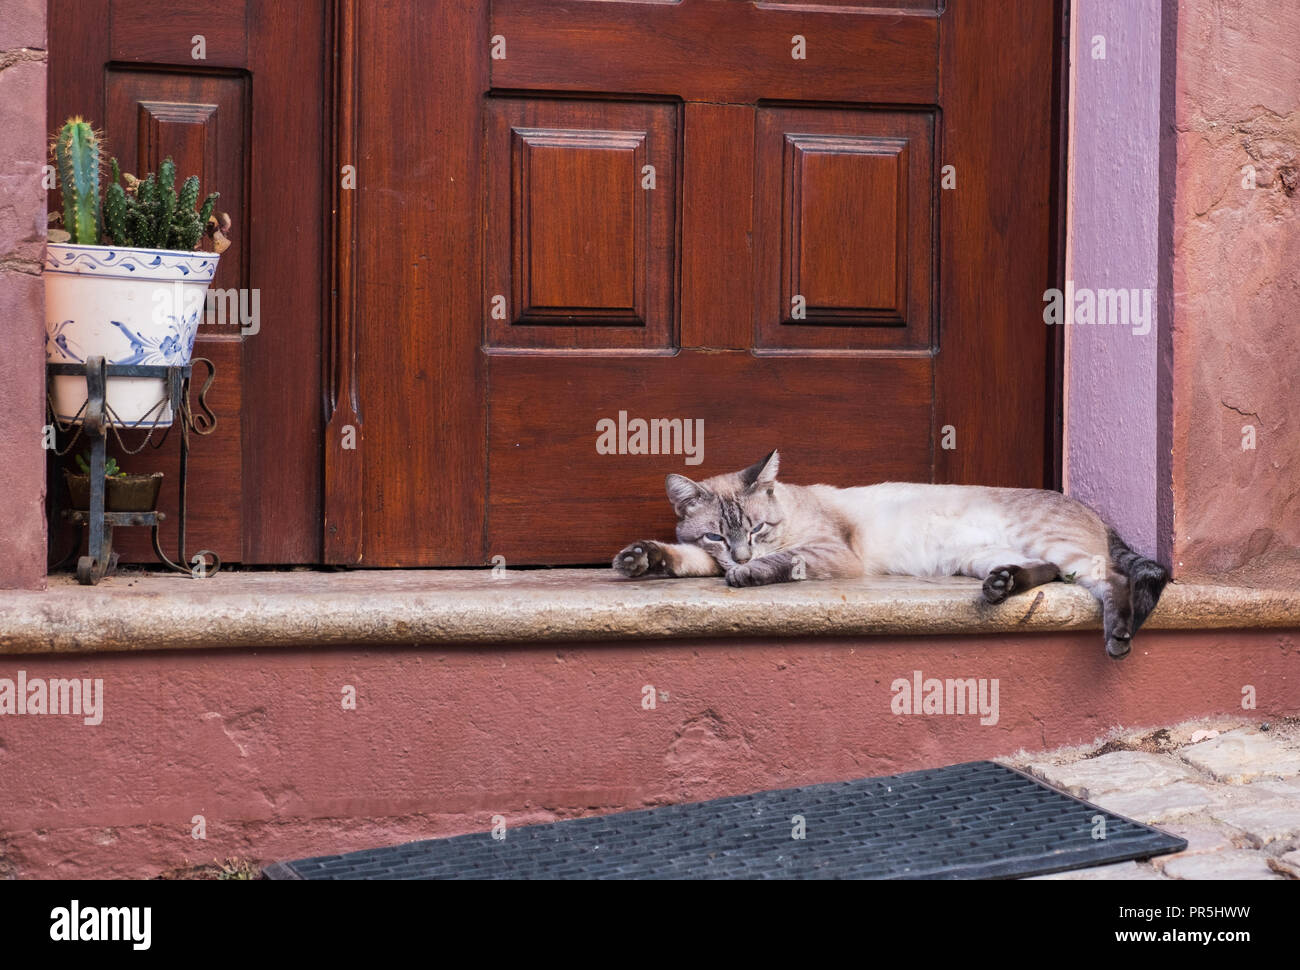 Sleeping siamese gray cat, outside a nice house. - Stock Image